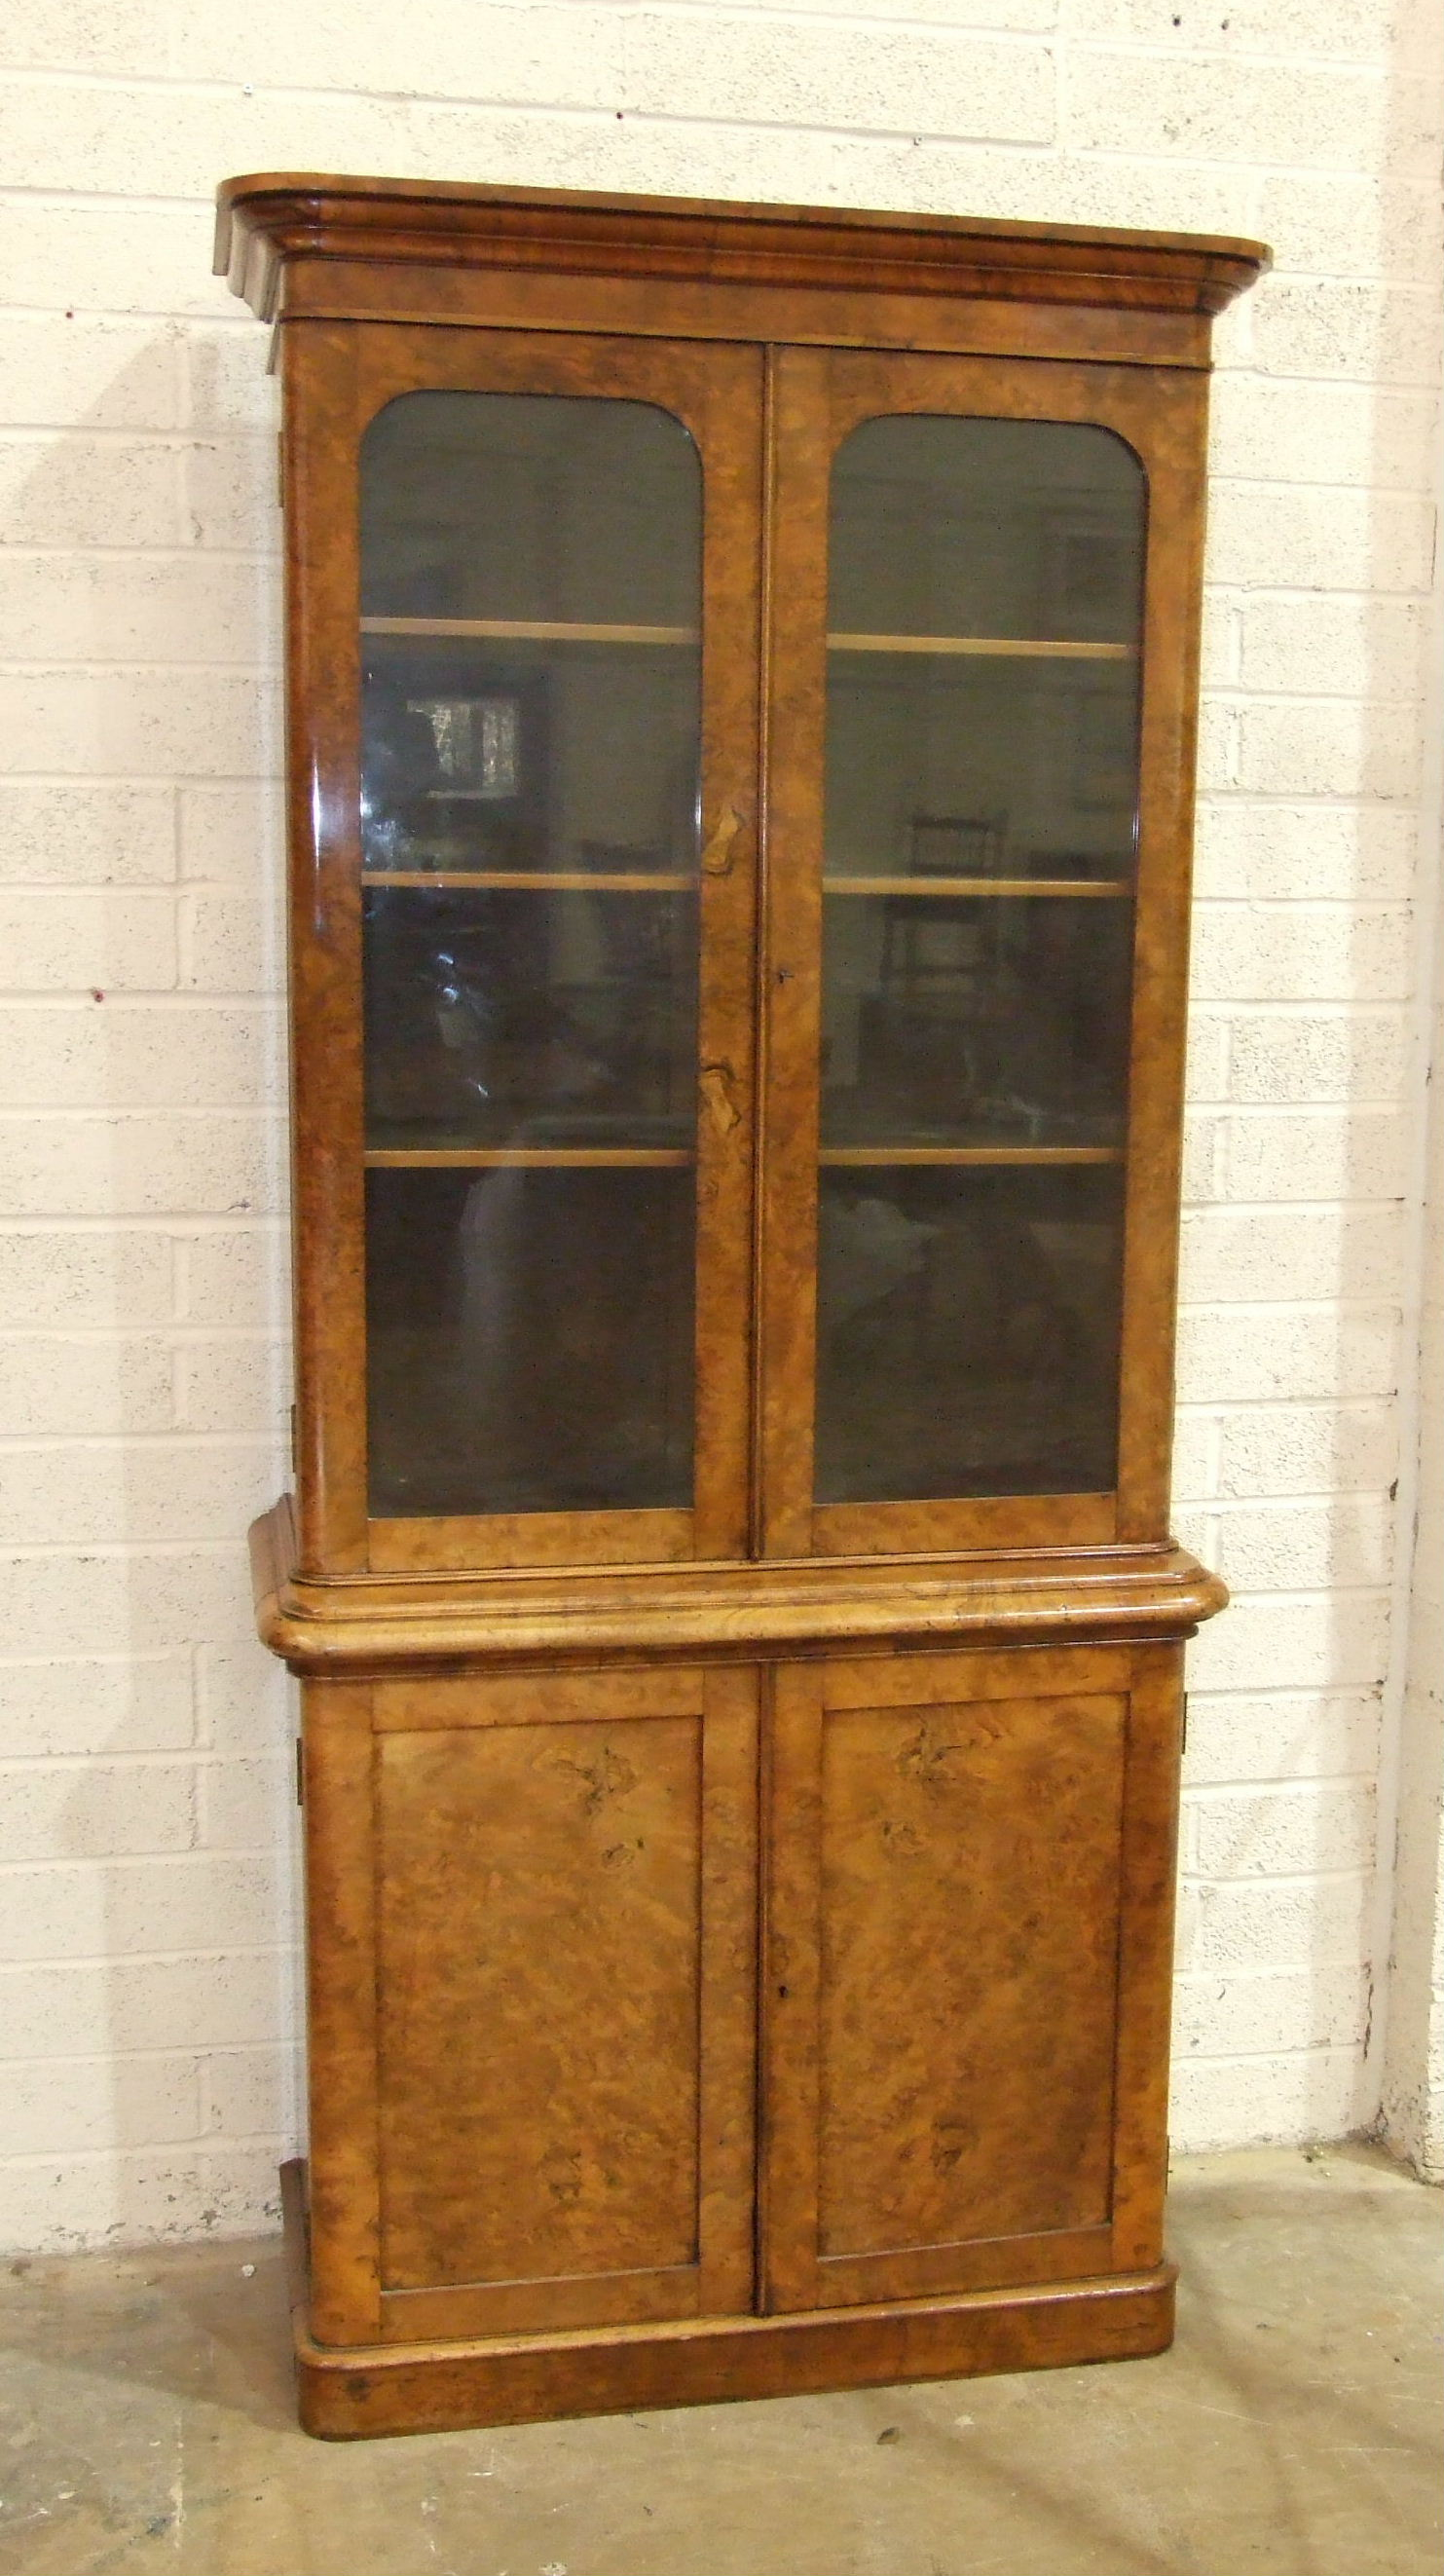 Lot 68 - A Victorian burr walnut bookcase, the moulded cornice above a pair of plain glazed doors and a